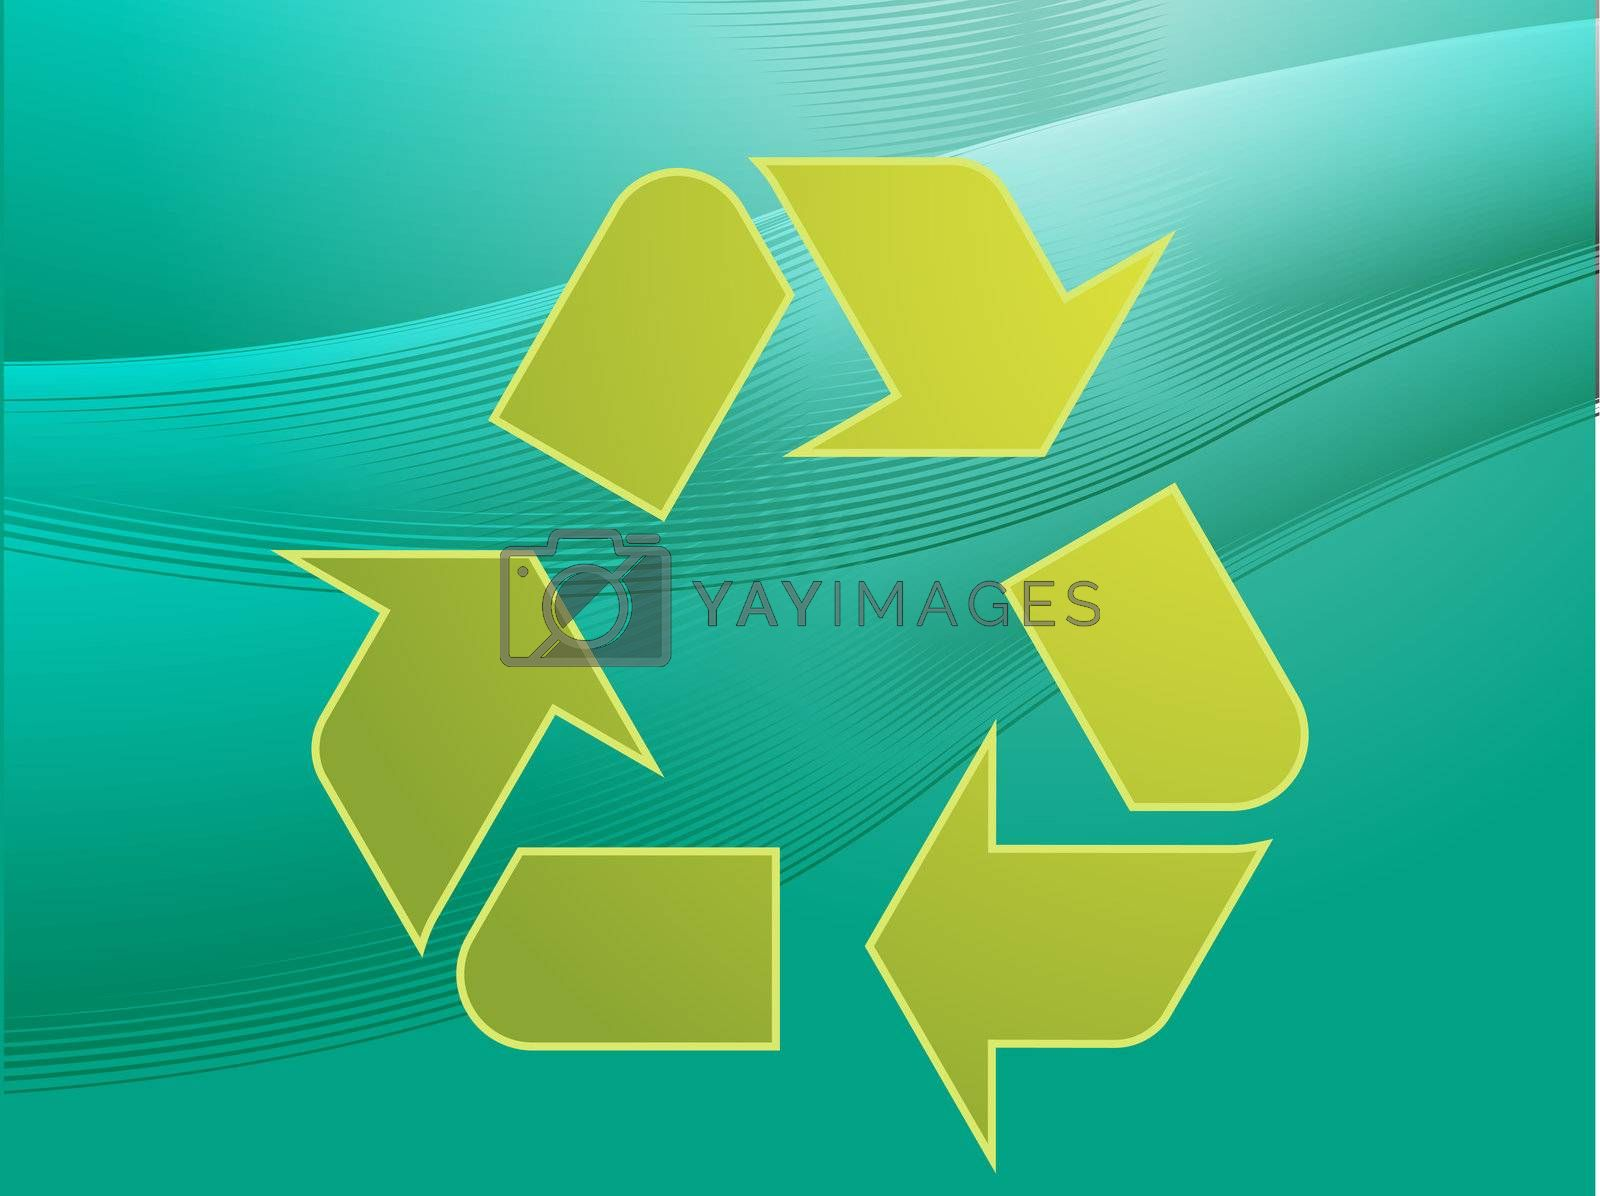 Royalty free image of Recycling eco symbol by kgtoh